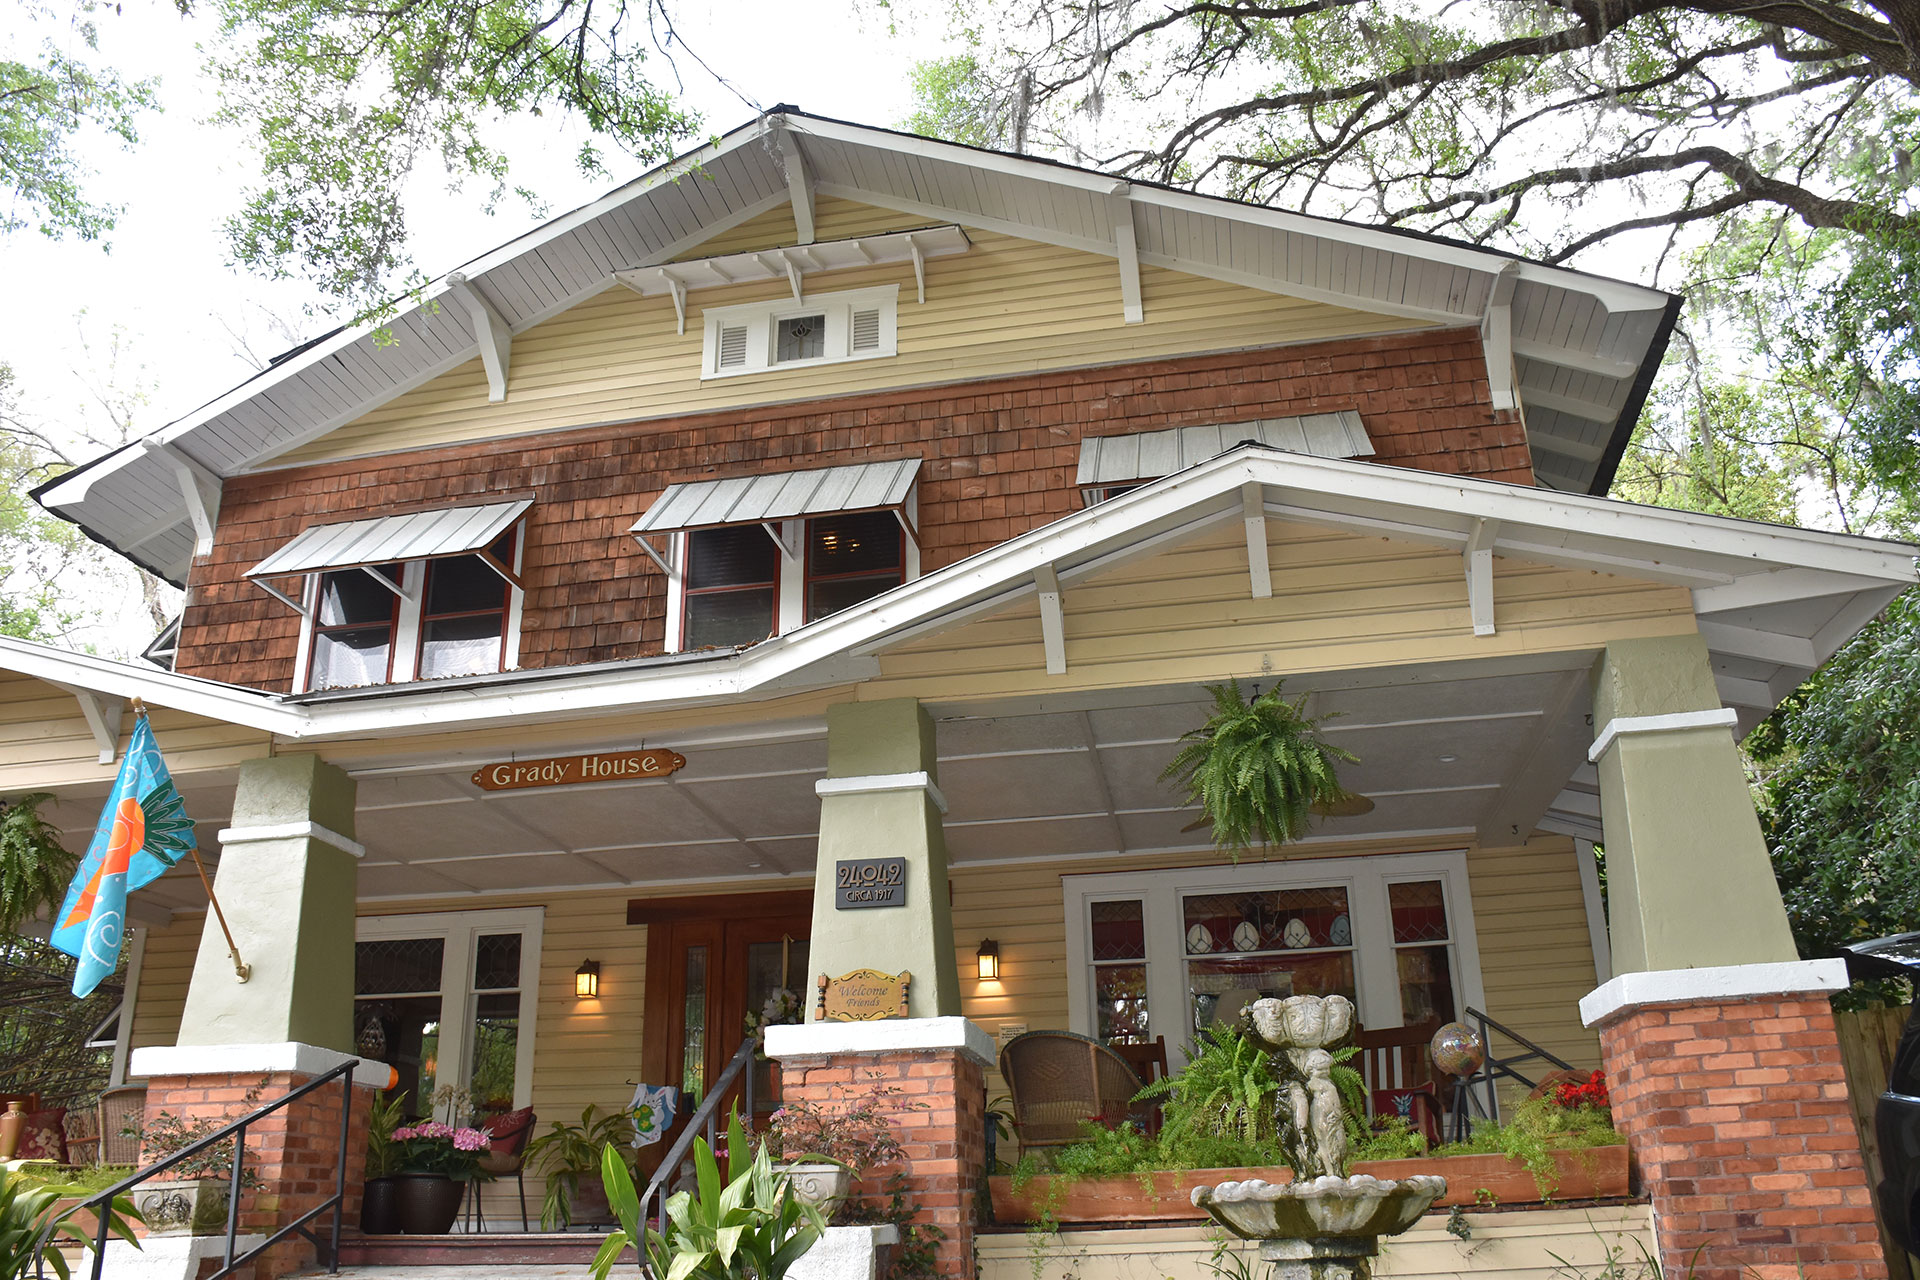 Grady House Bed And Breakfast Florida